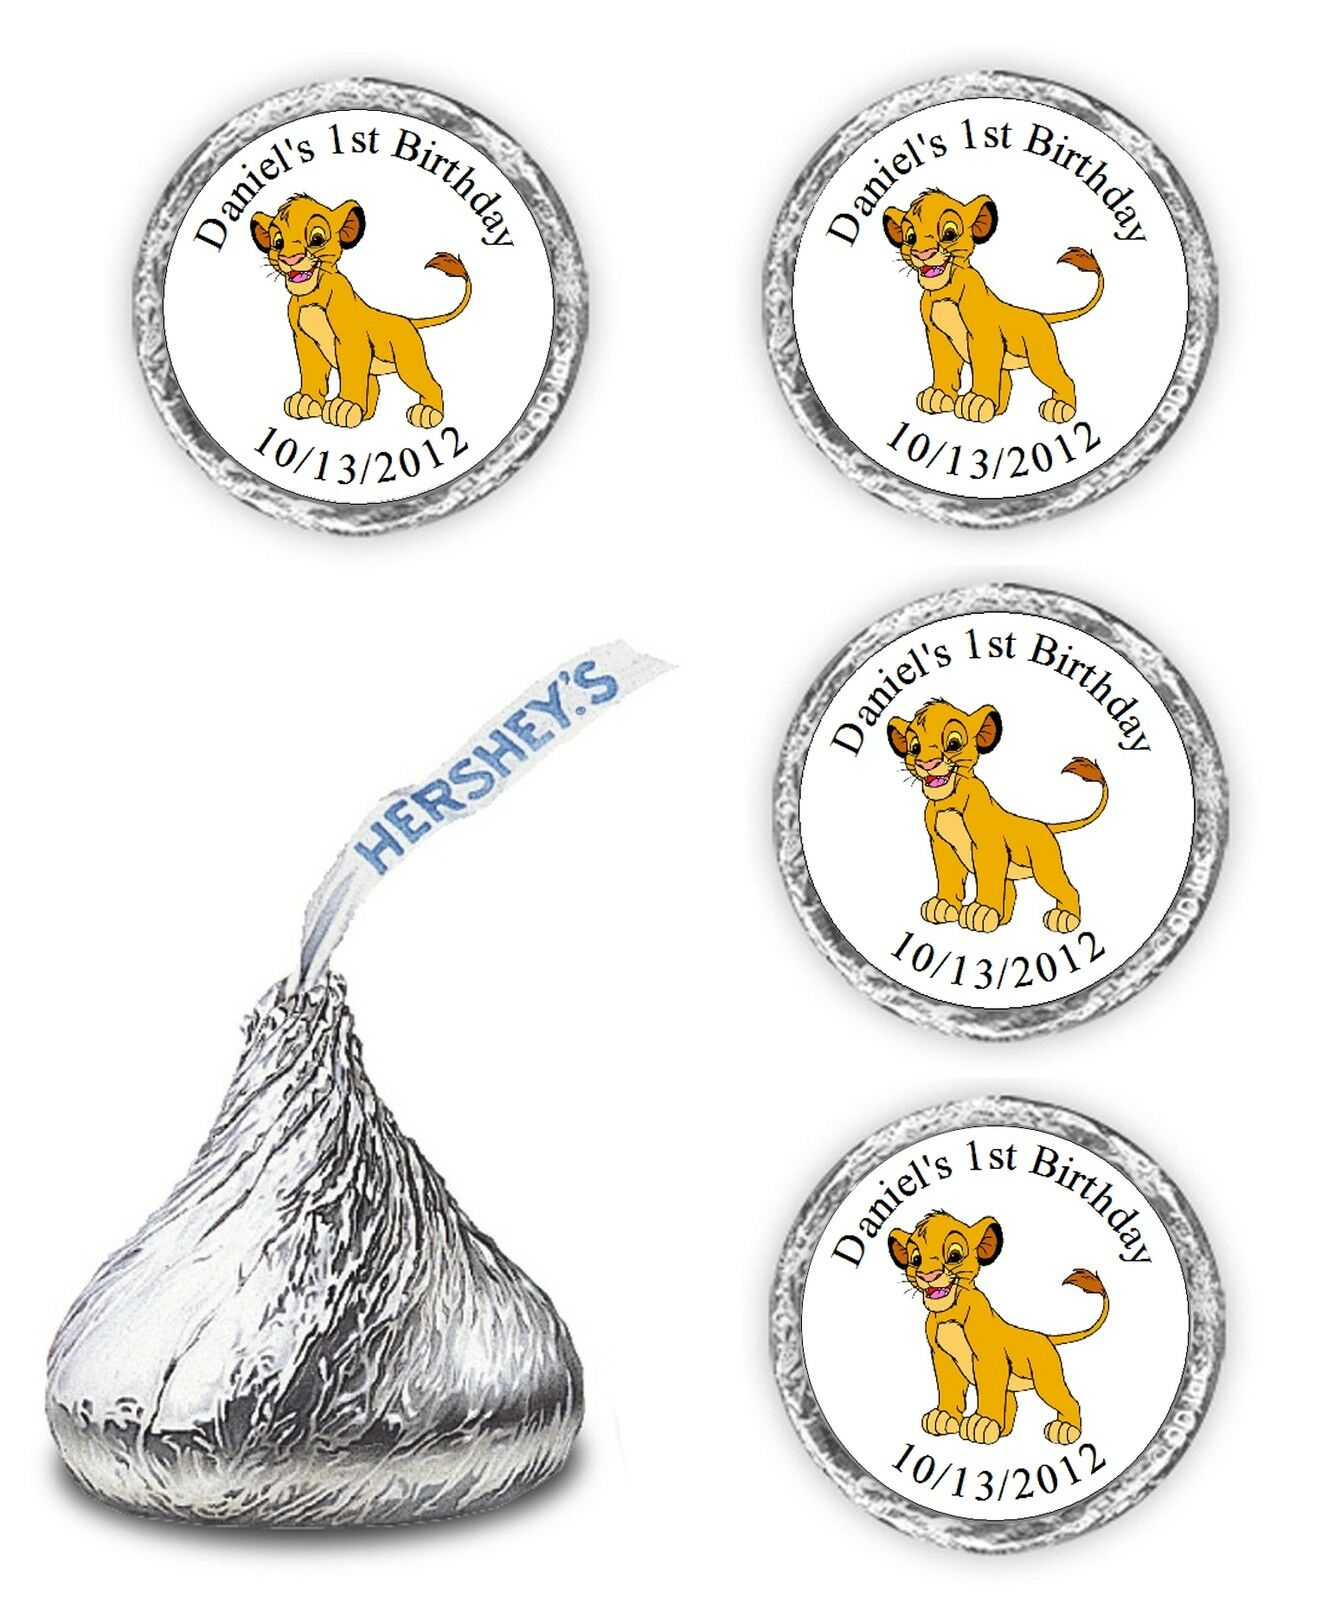 108 Lion King Birthday Party Candy Kisses Favors Wrappers Stickers ...